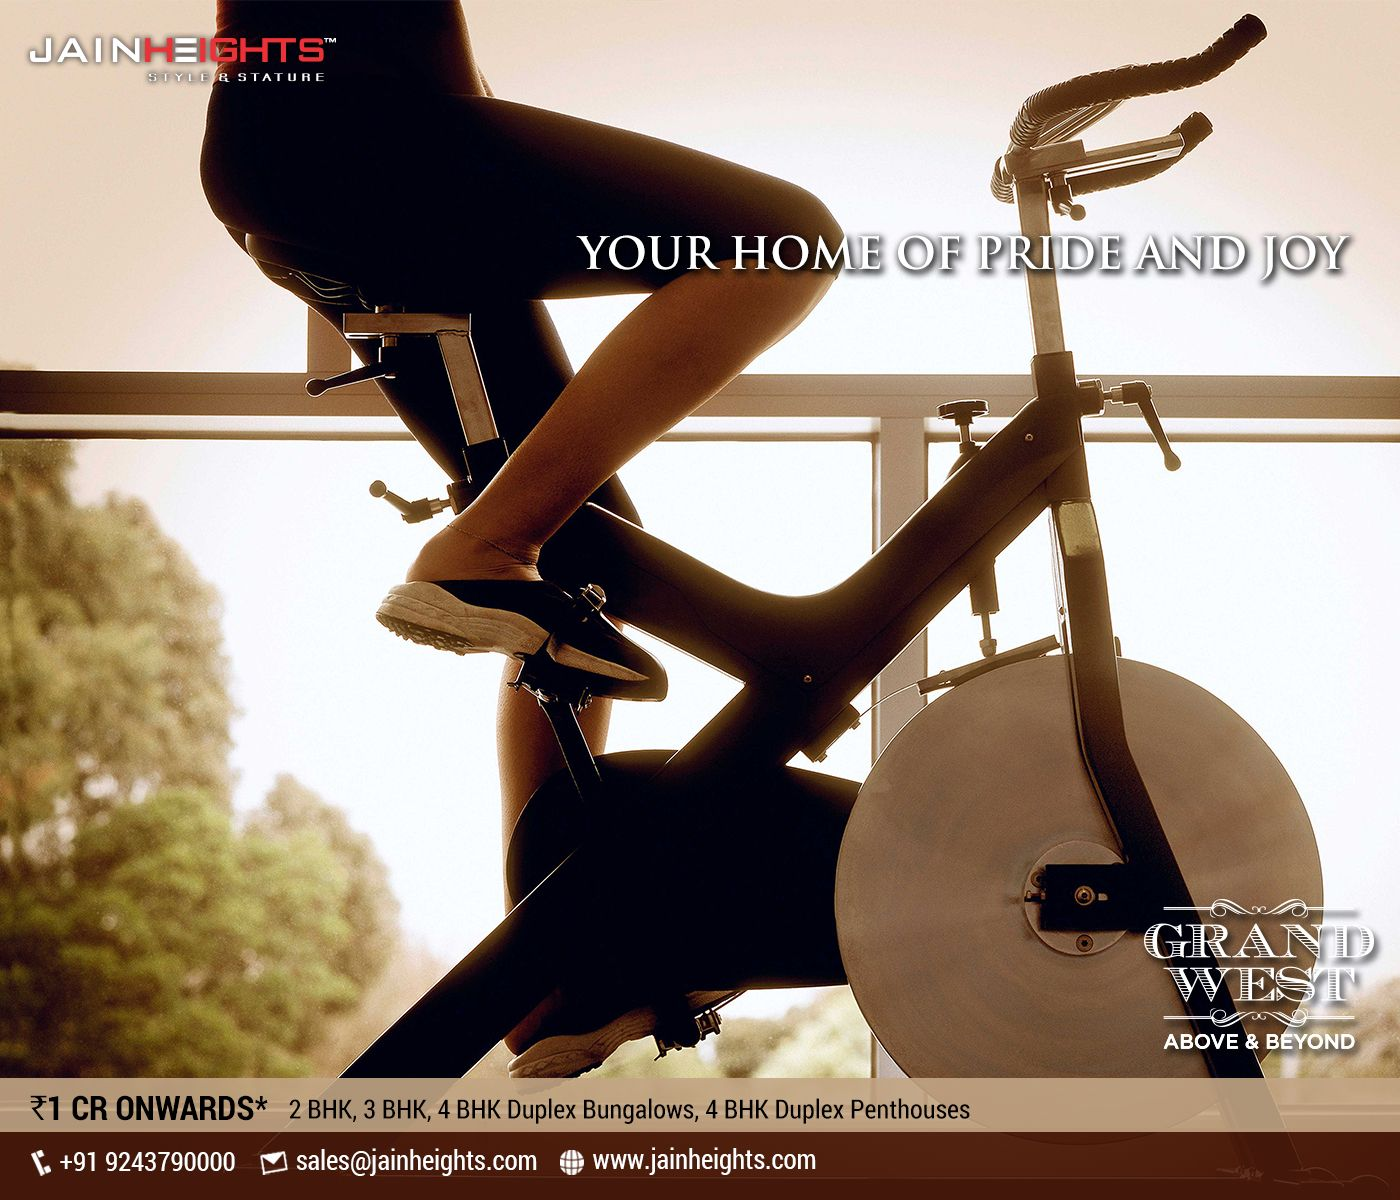 Resplendent living closer to you When you buy Jain Heights – Grand West, you make an investment in a superlative lifestyle and enduring value- an investment that we honour with a lifetime of commitment. The vaulting towers embraced by sweeping bands at Grand West form a unique and defining architectural feature. http://bit.ly/10L3muL Location: Yeshwanthpur Price: INR 1 Cr Onwards * Call: +91 92437 90000 | Sales@jainheights.com #LuxuryLiving #Bangalore #Grandwest #JainHeights